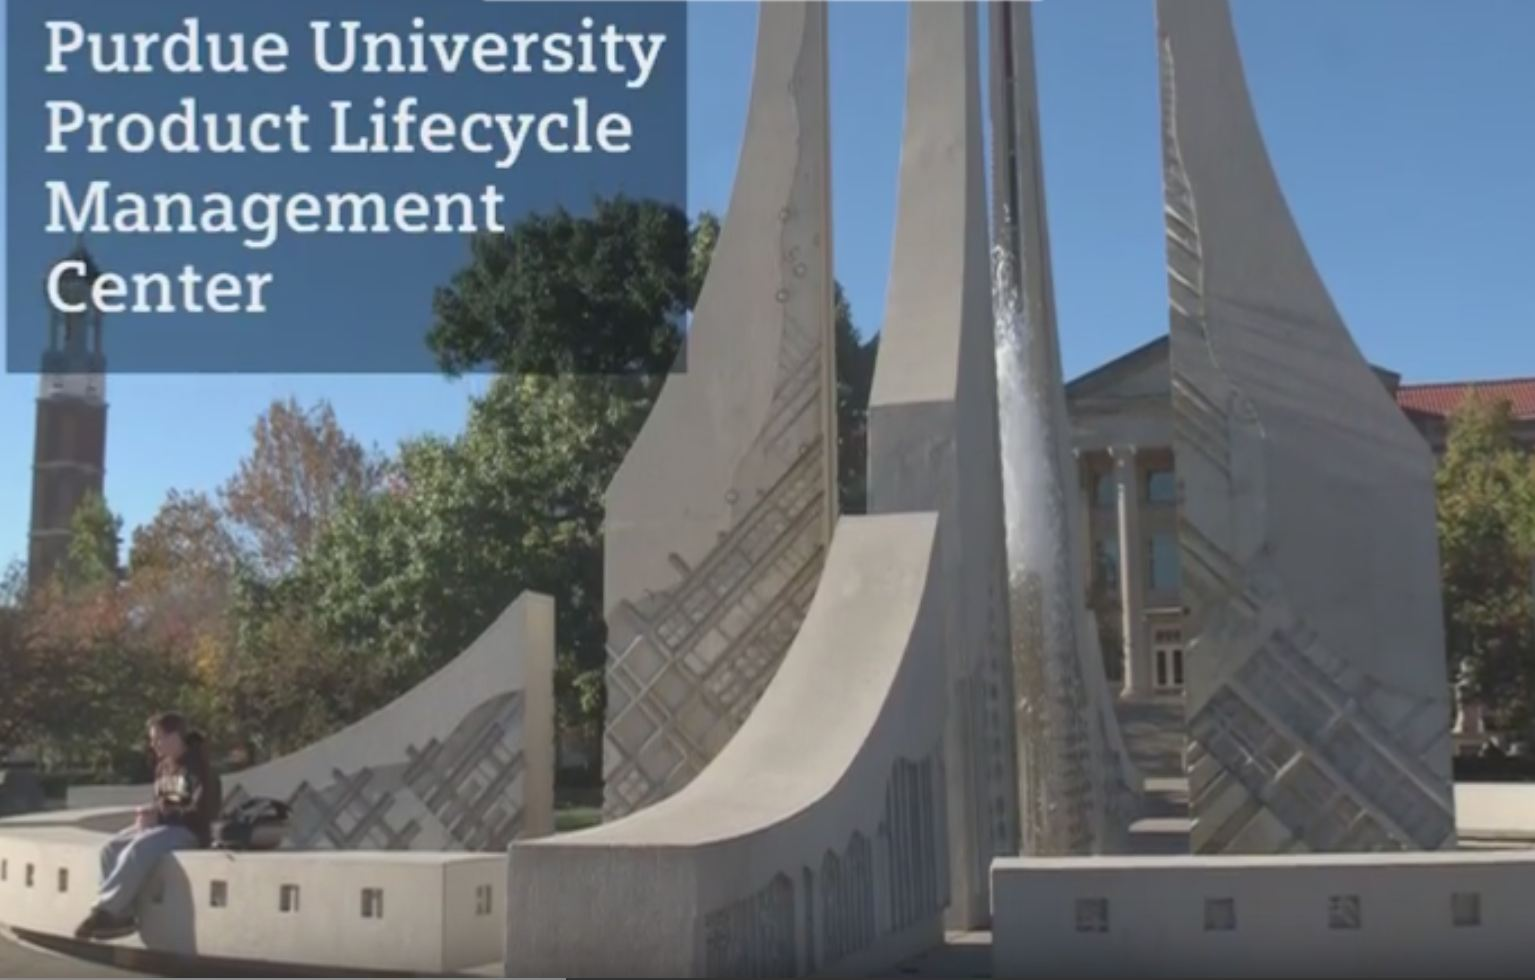 Purdue University Product Lifecycle Management Center